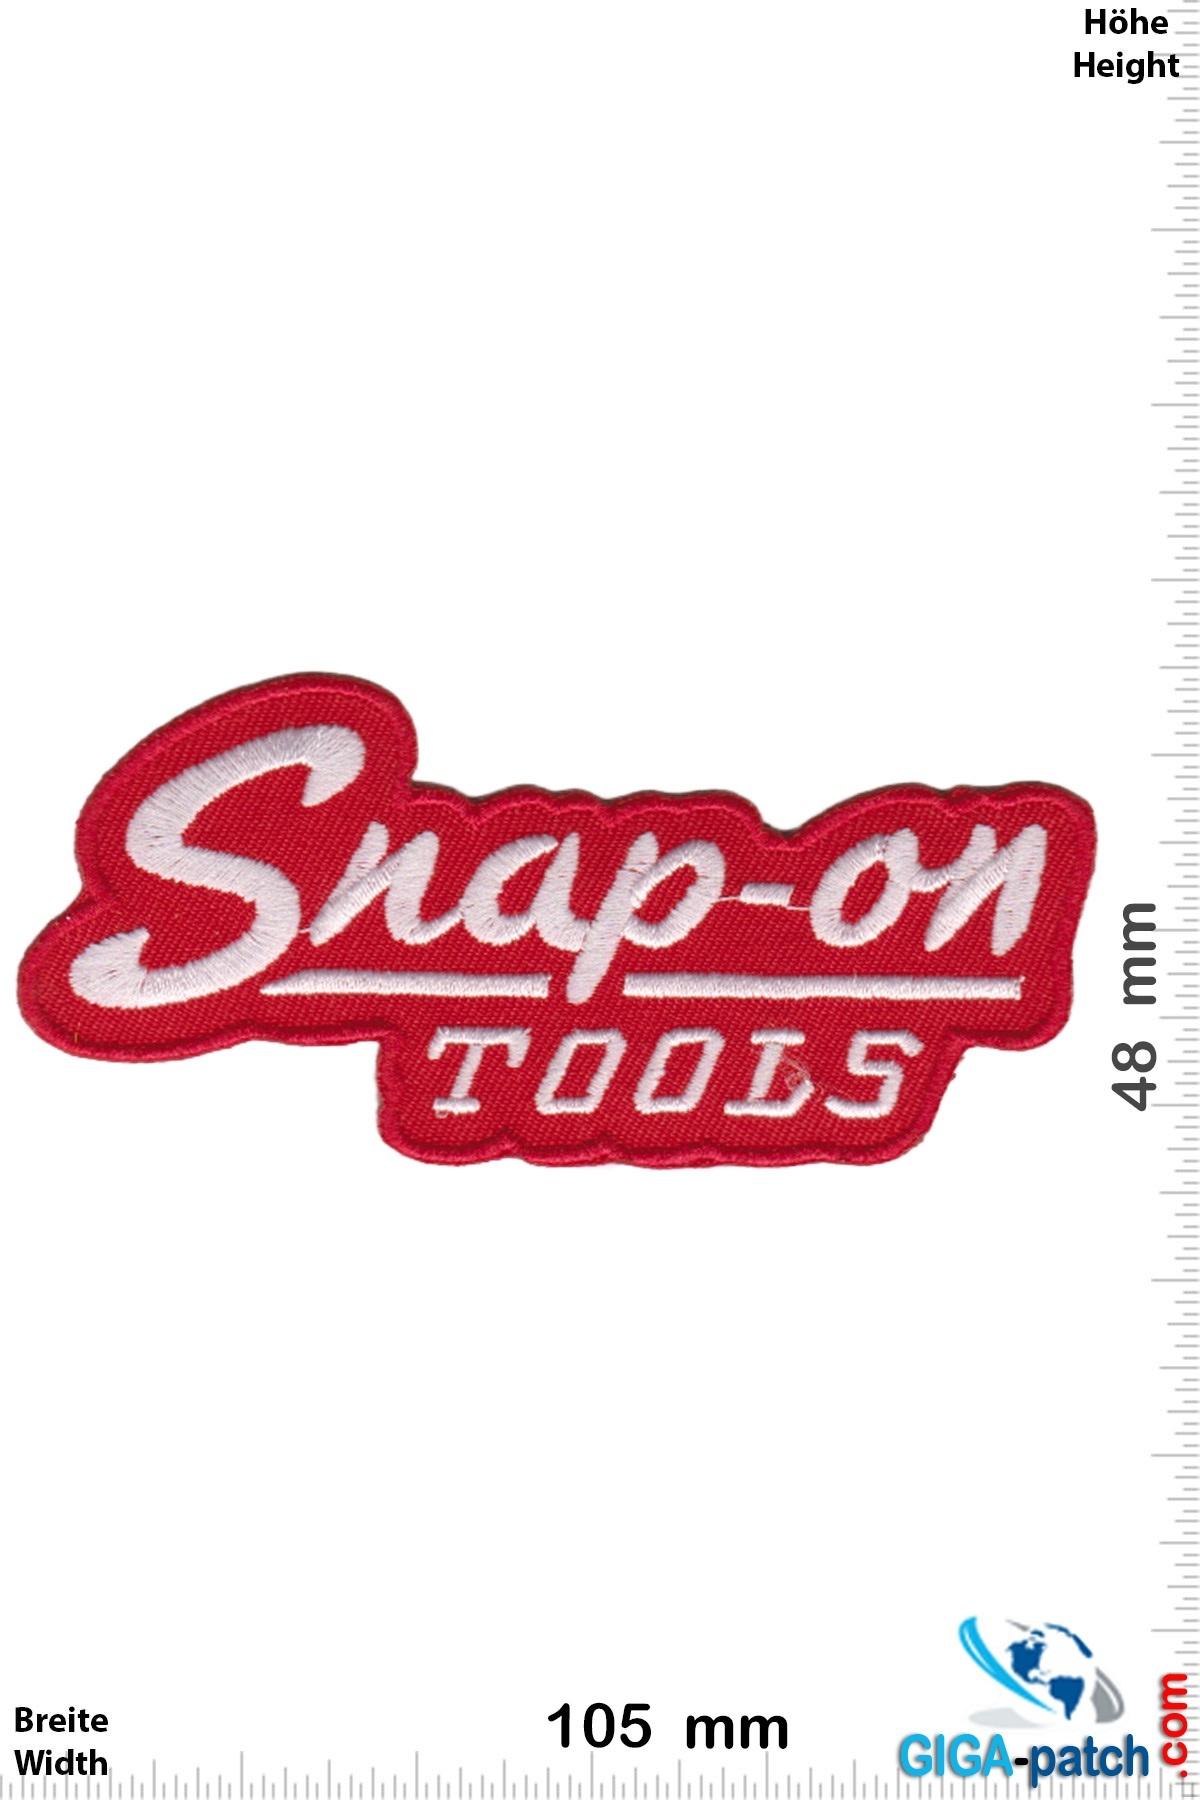 Snap-on  Snap-on Tools - red silver - Werkzeug